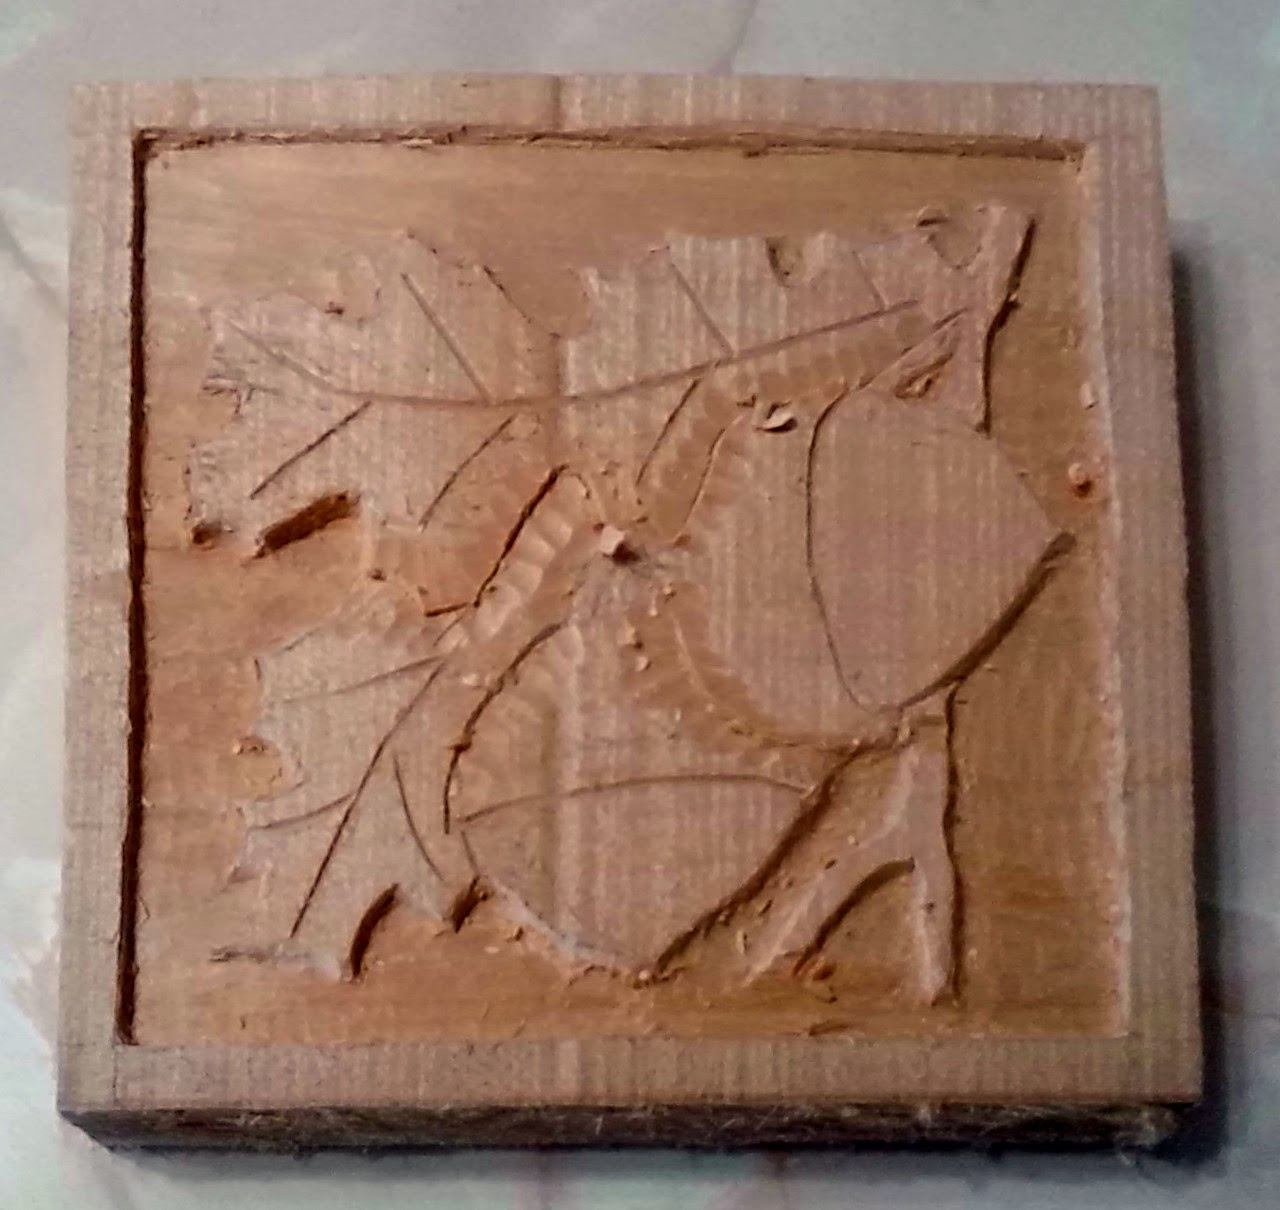 Politics power and science: wood carving again.